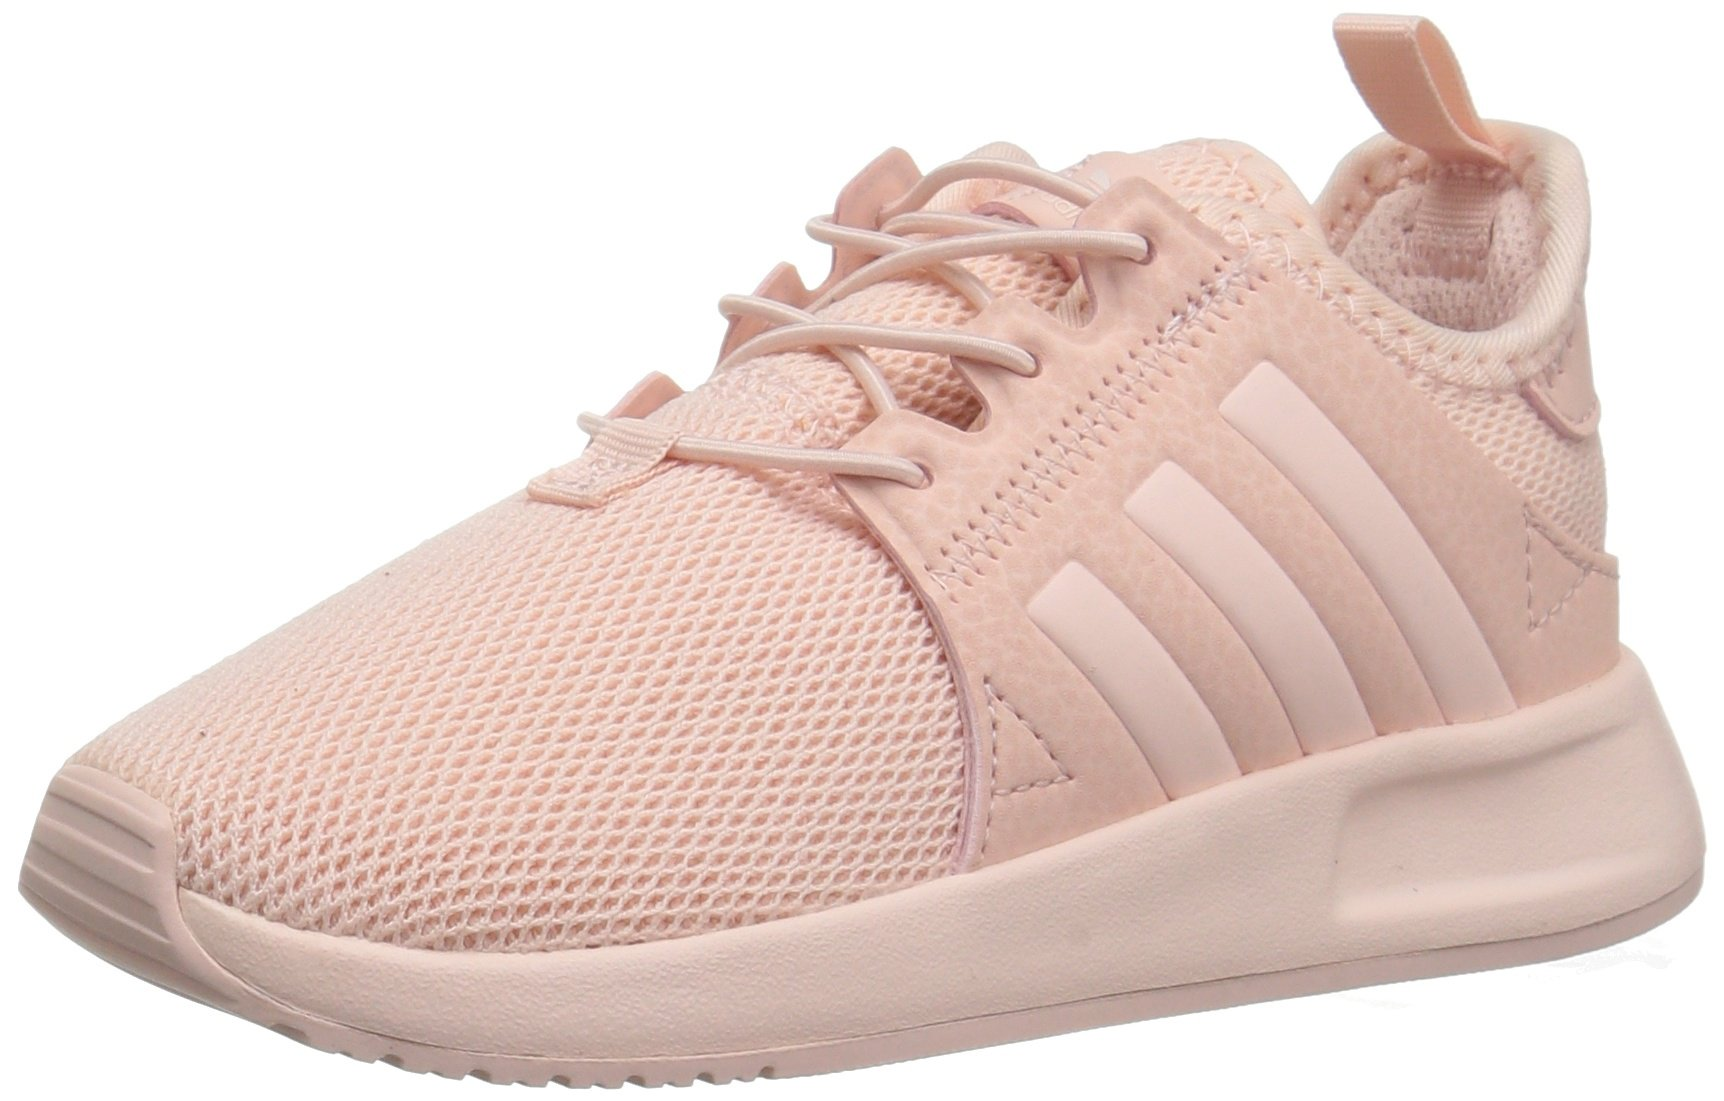 adidas Originals Girls' X_PLR EL I Sneaker, Ice Pink/Ice Pink/Ice Pink, 5 M US Infant